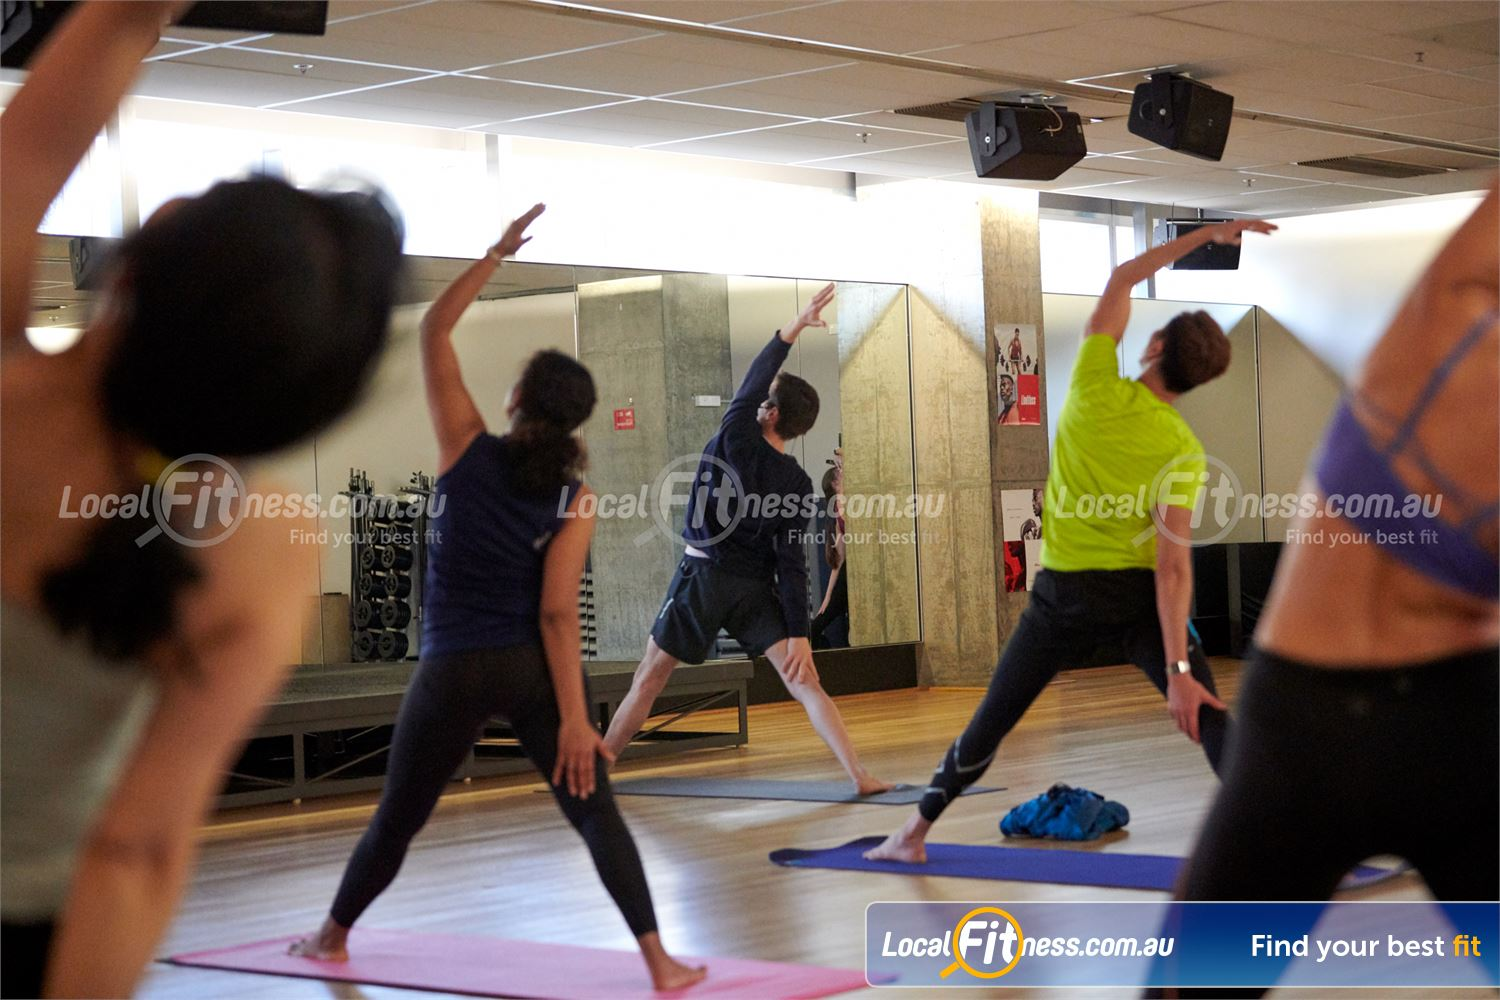 Fitness First QV Platinum Melbourne Popular classes inc. Melbourne Yoga and Pilates.